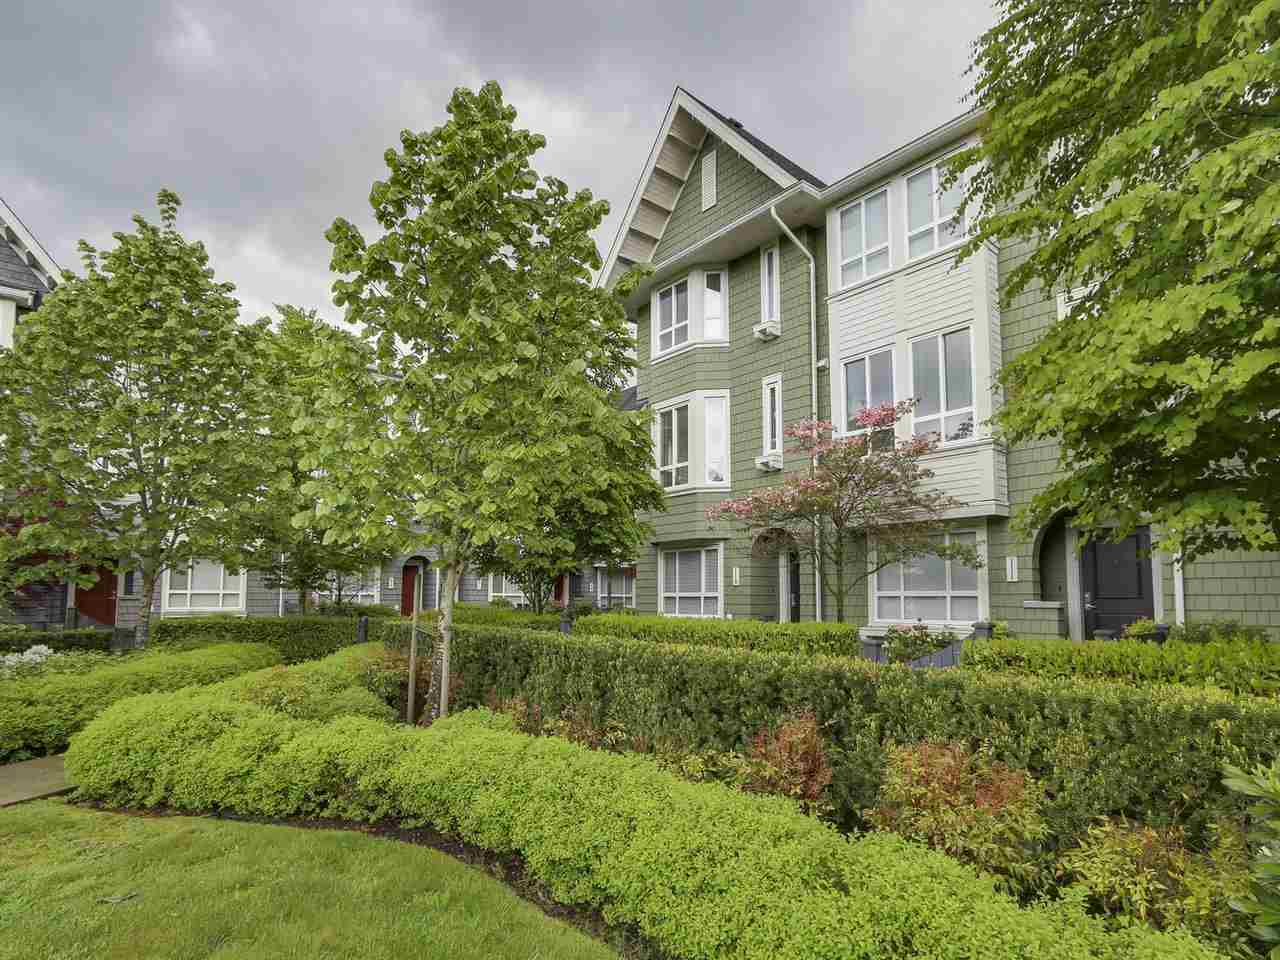 Main Photo: # 110 - 2418 Avon  Place in Port Coquitlam: Riverwood Townhouse for sale : MLS® # R2166312